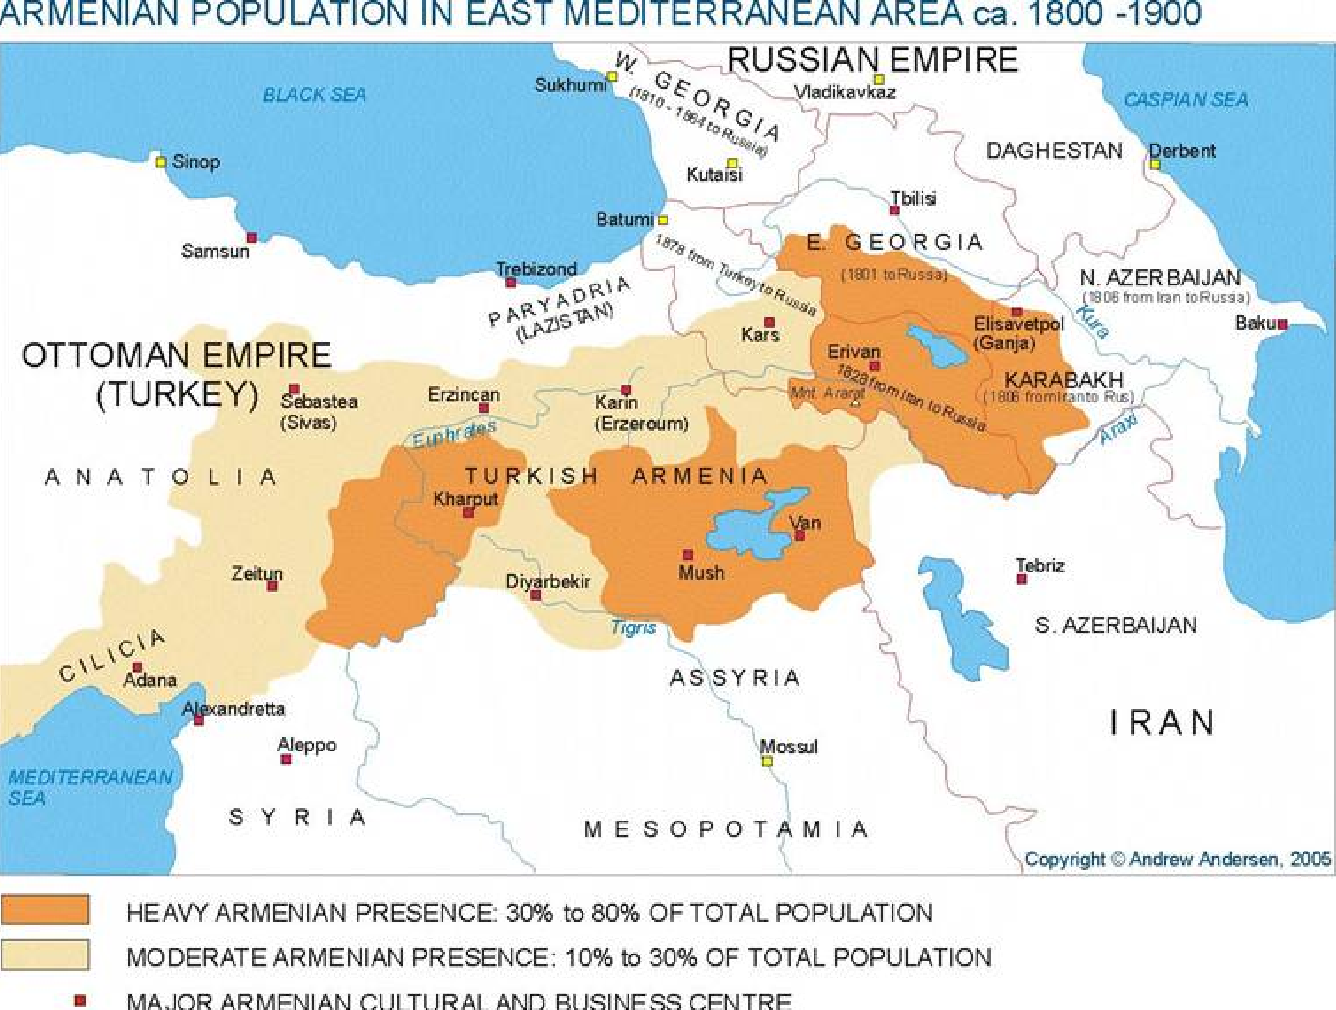 Armenian Population In East Mediterranean Area ca. 1800~1900 and Ottoman Empire.png